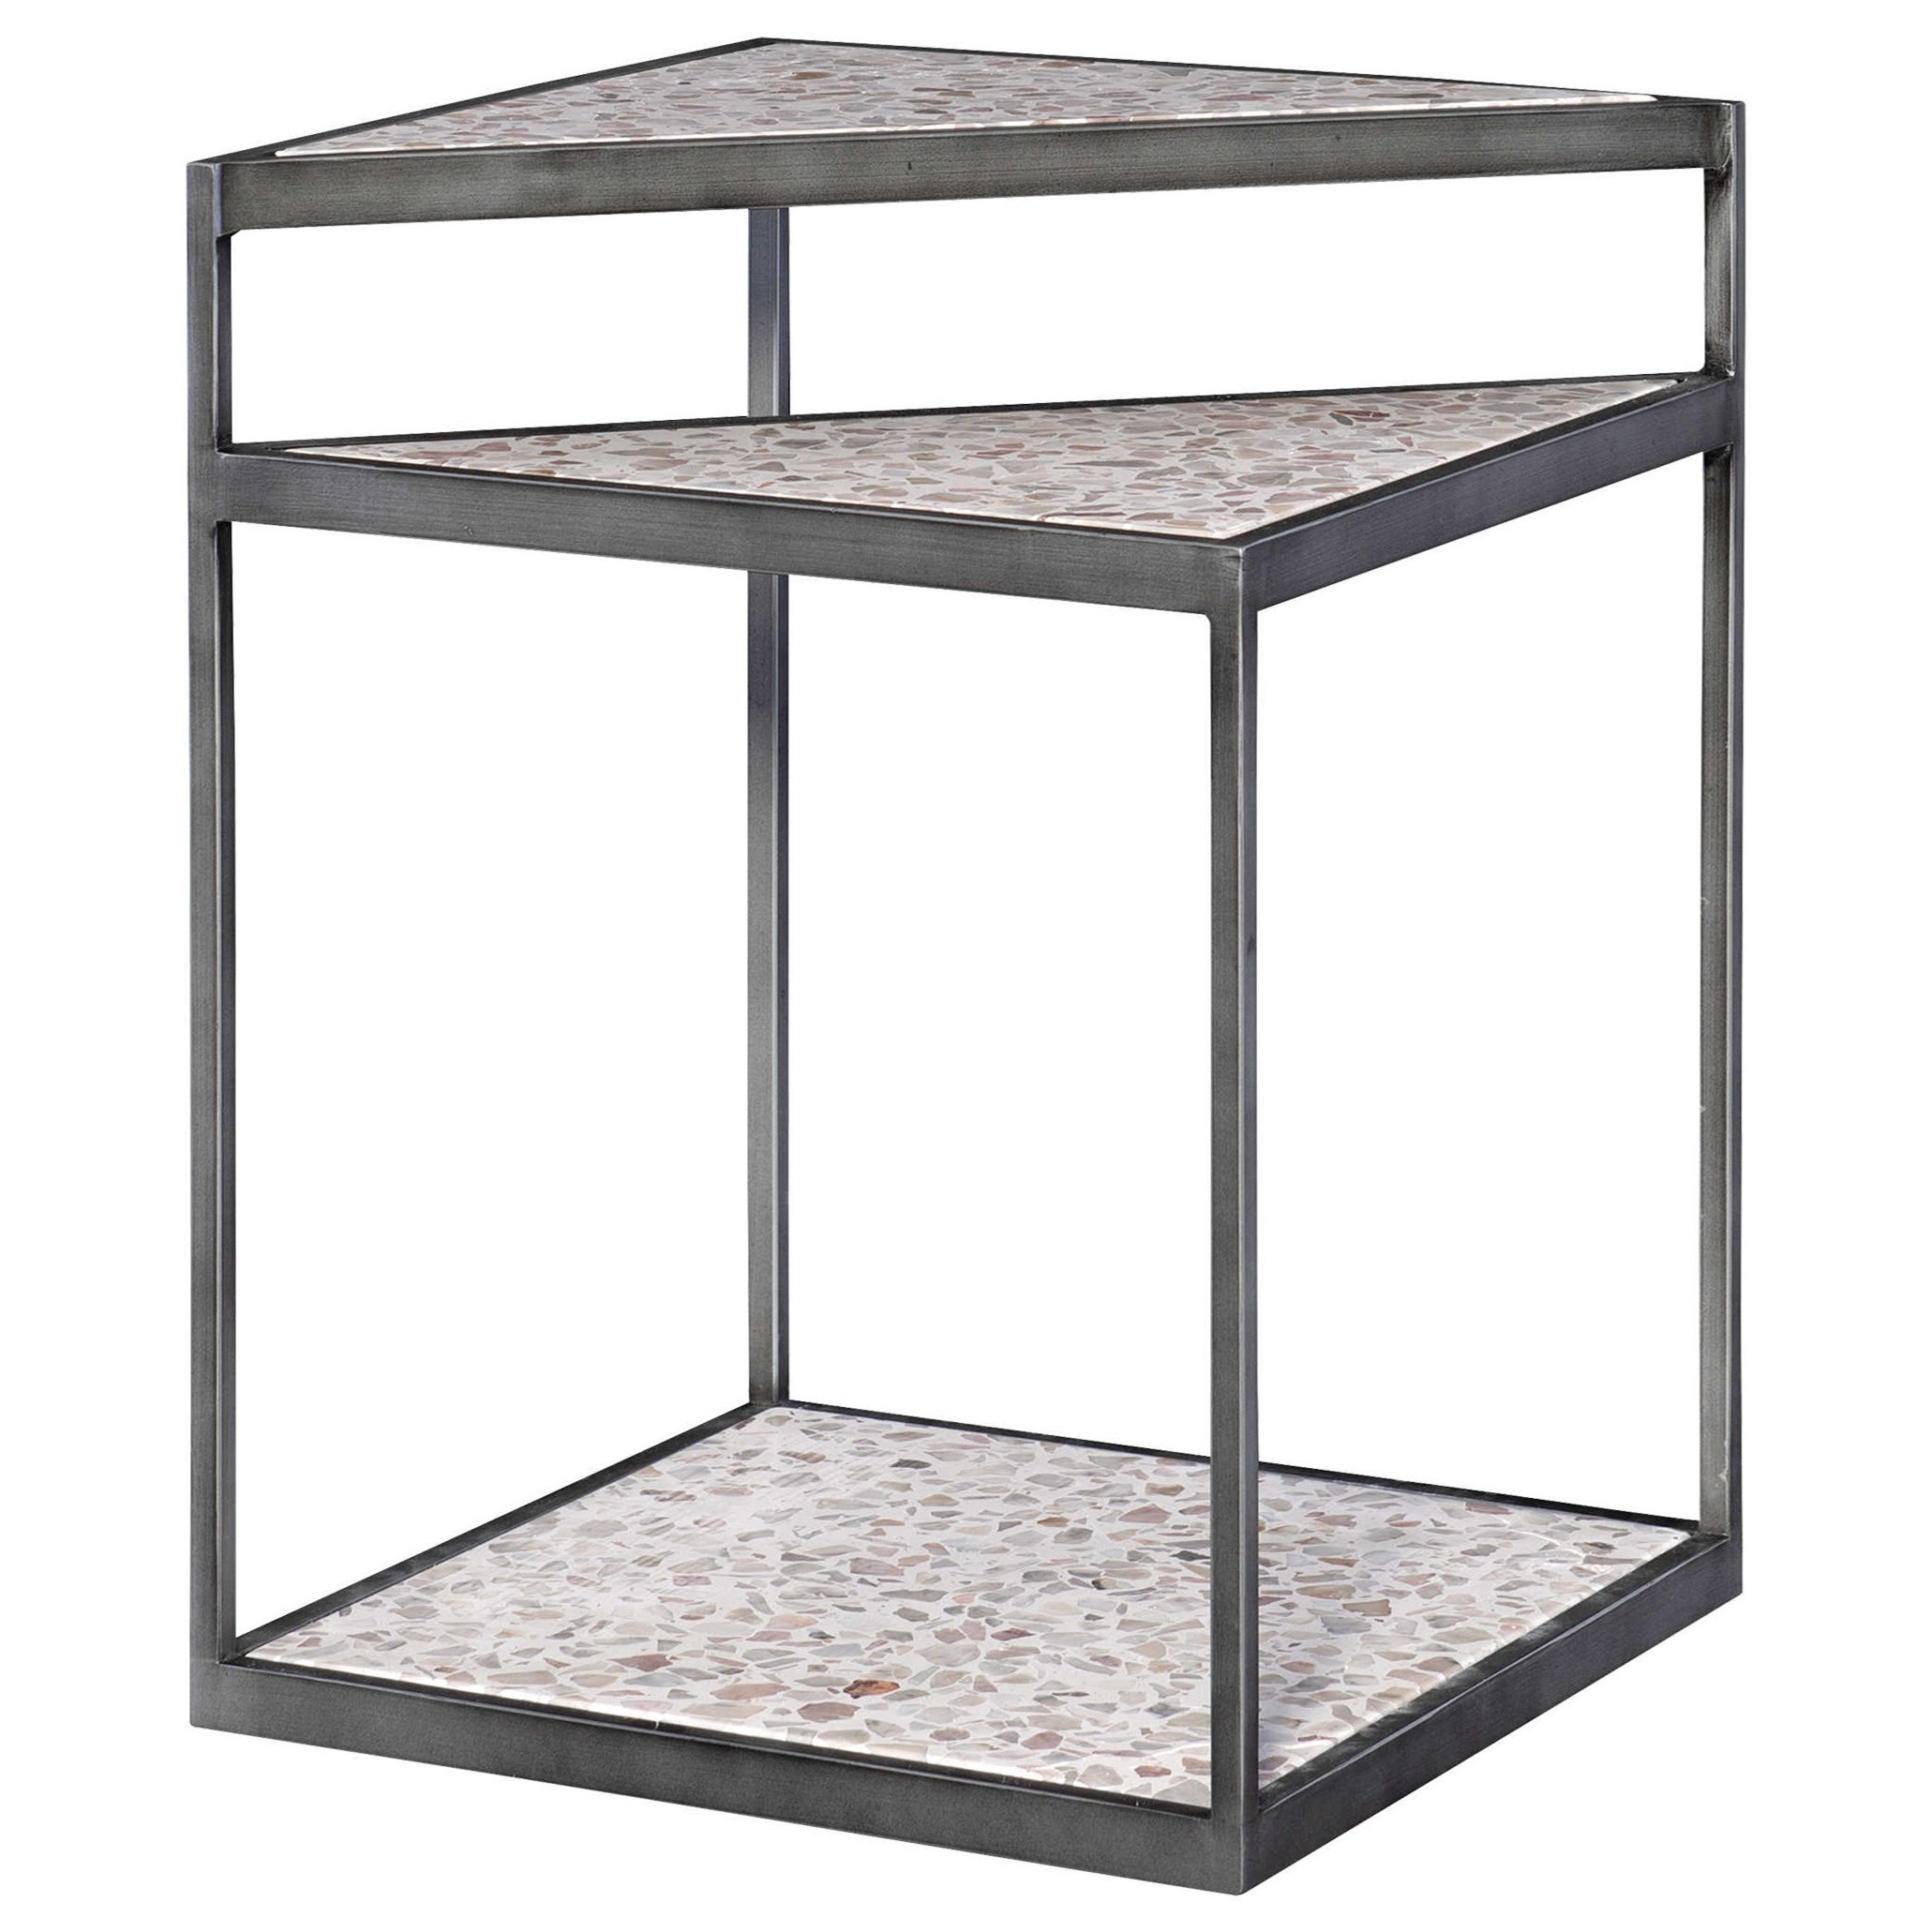 Accent Furniture - Occasional Tables Terra Modern Accent Table by Uttermost at O'Dunk & O'Bright Furniture